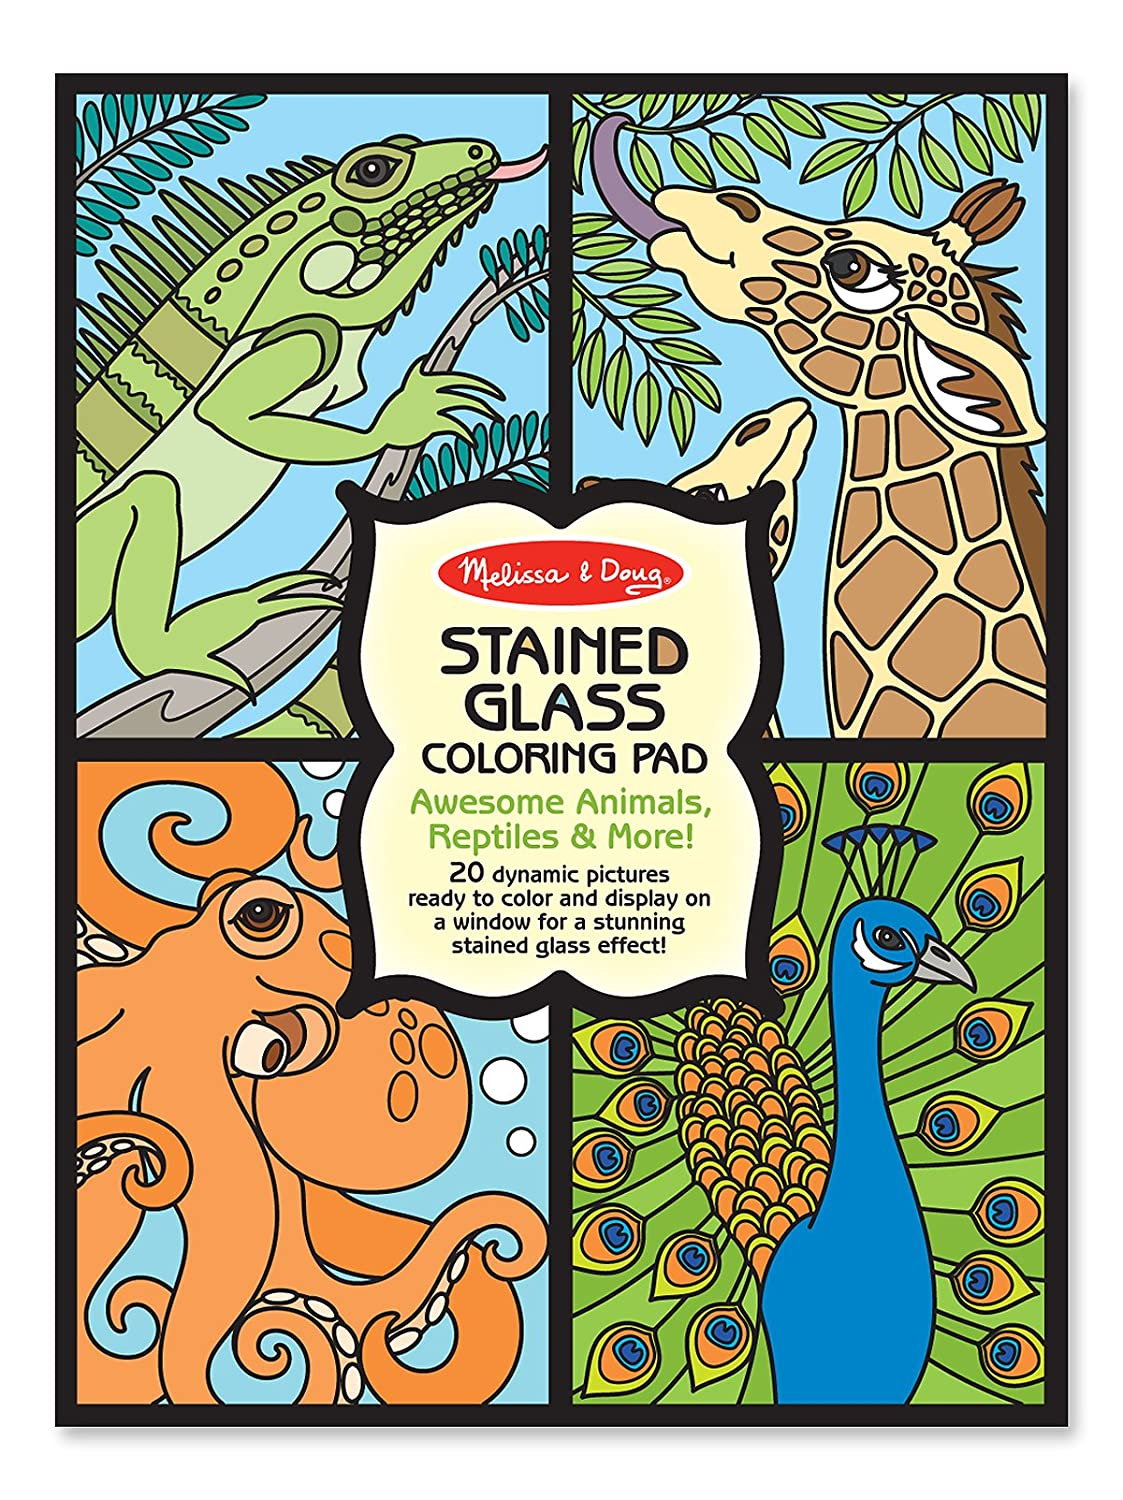 amazoncom melissa doug stained glass coloring pad animals melissa doug toys games - Melissa And Doug Coloring Book